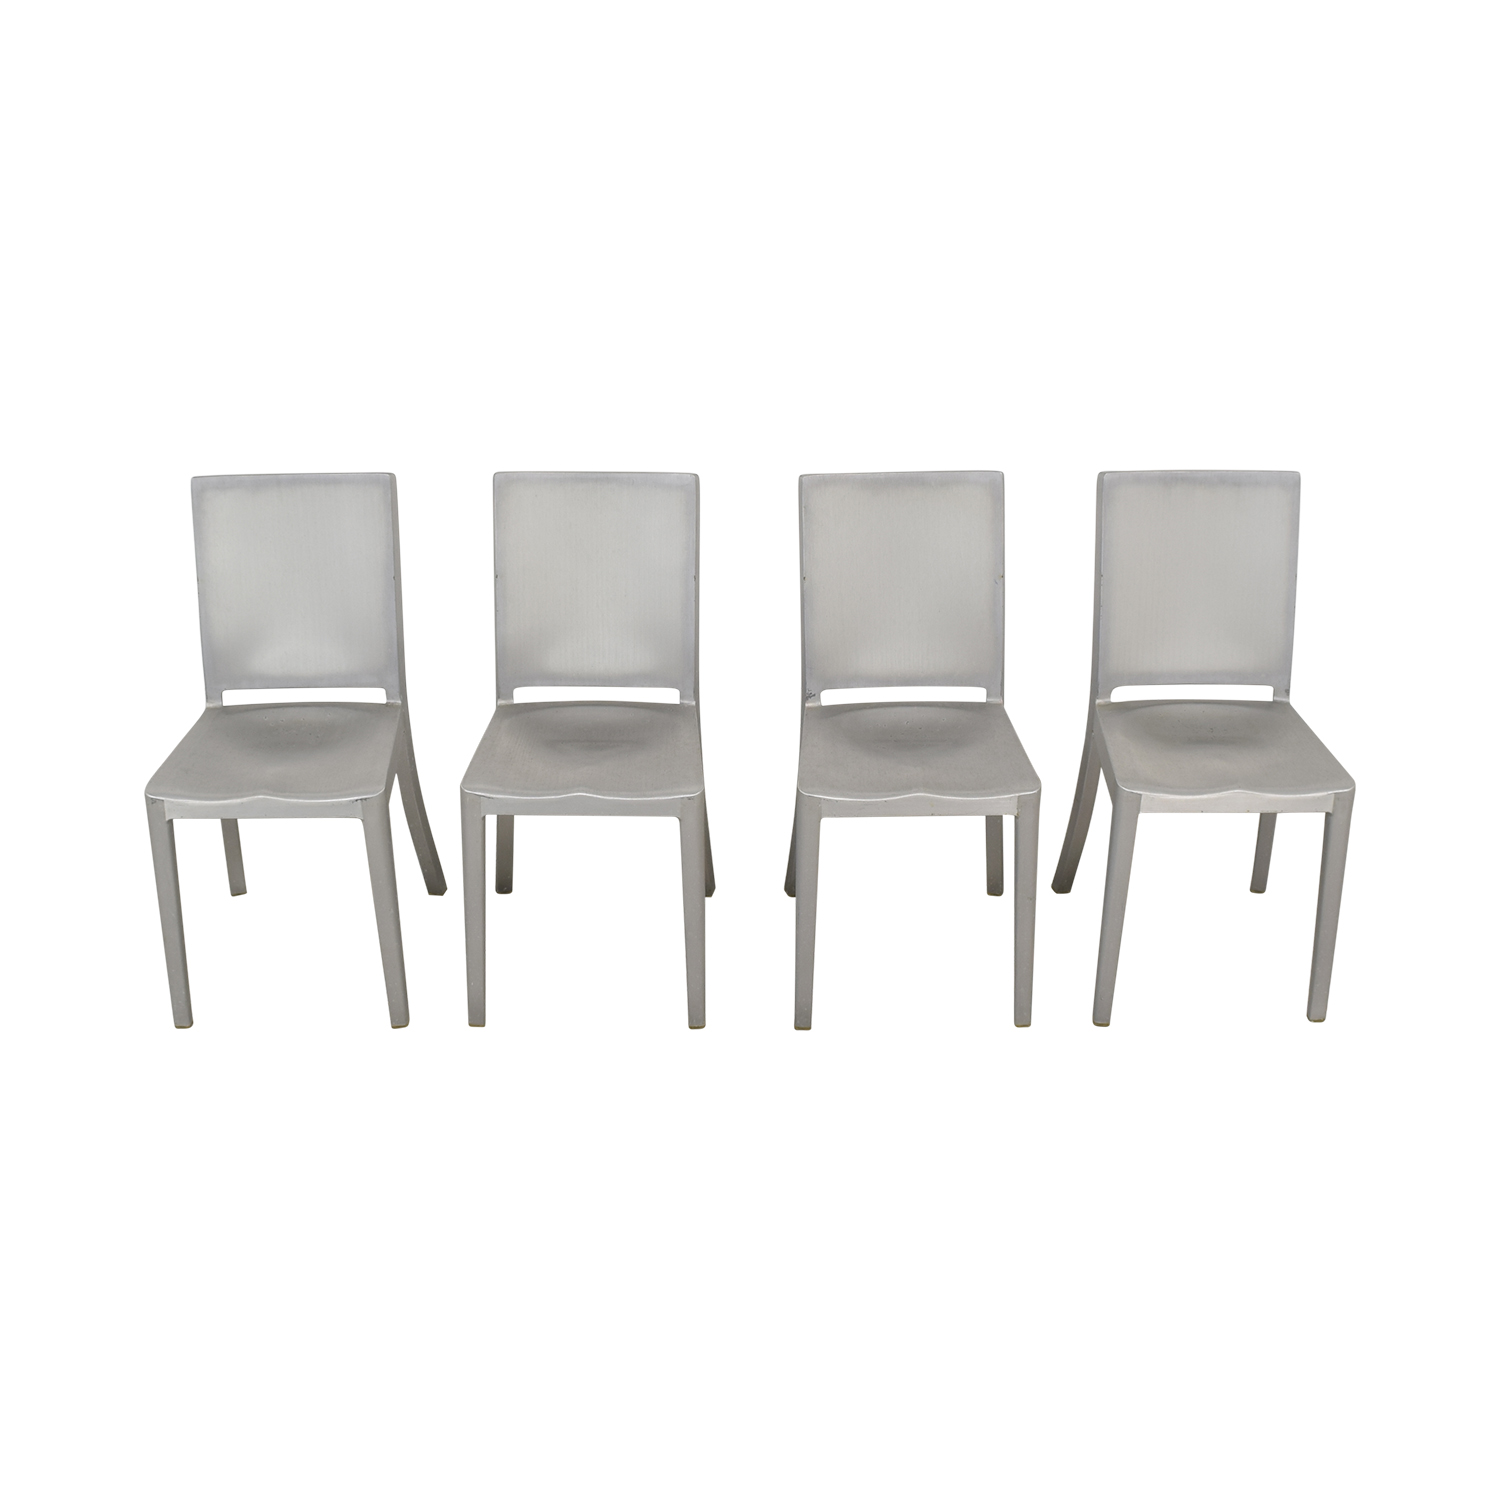 Emeco Emeco by Philippe Starck Hudson Chairs nj